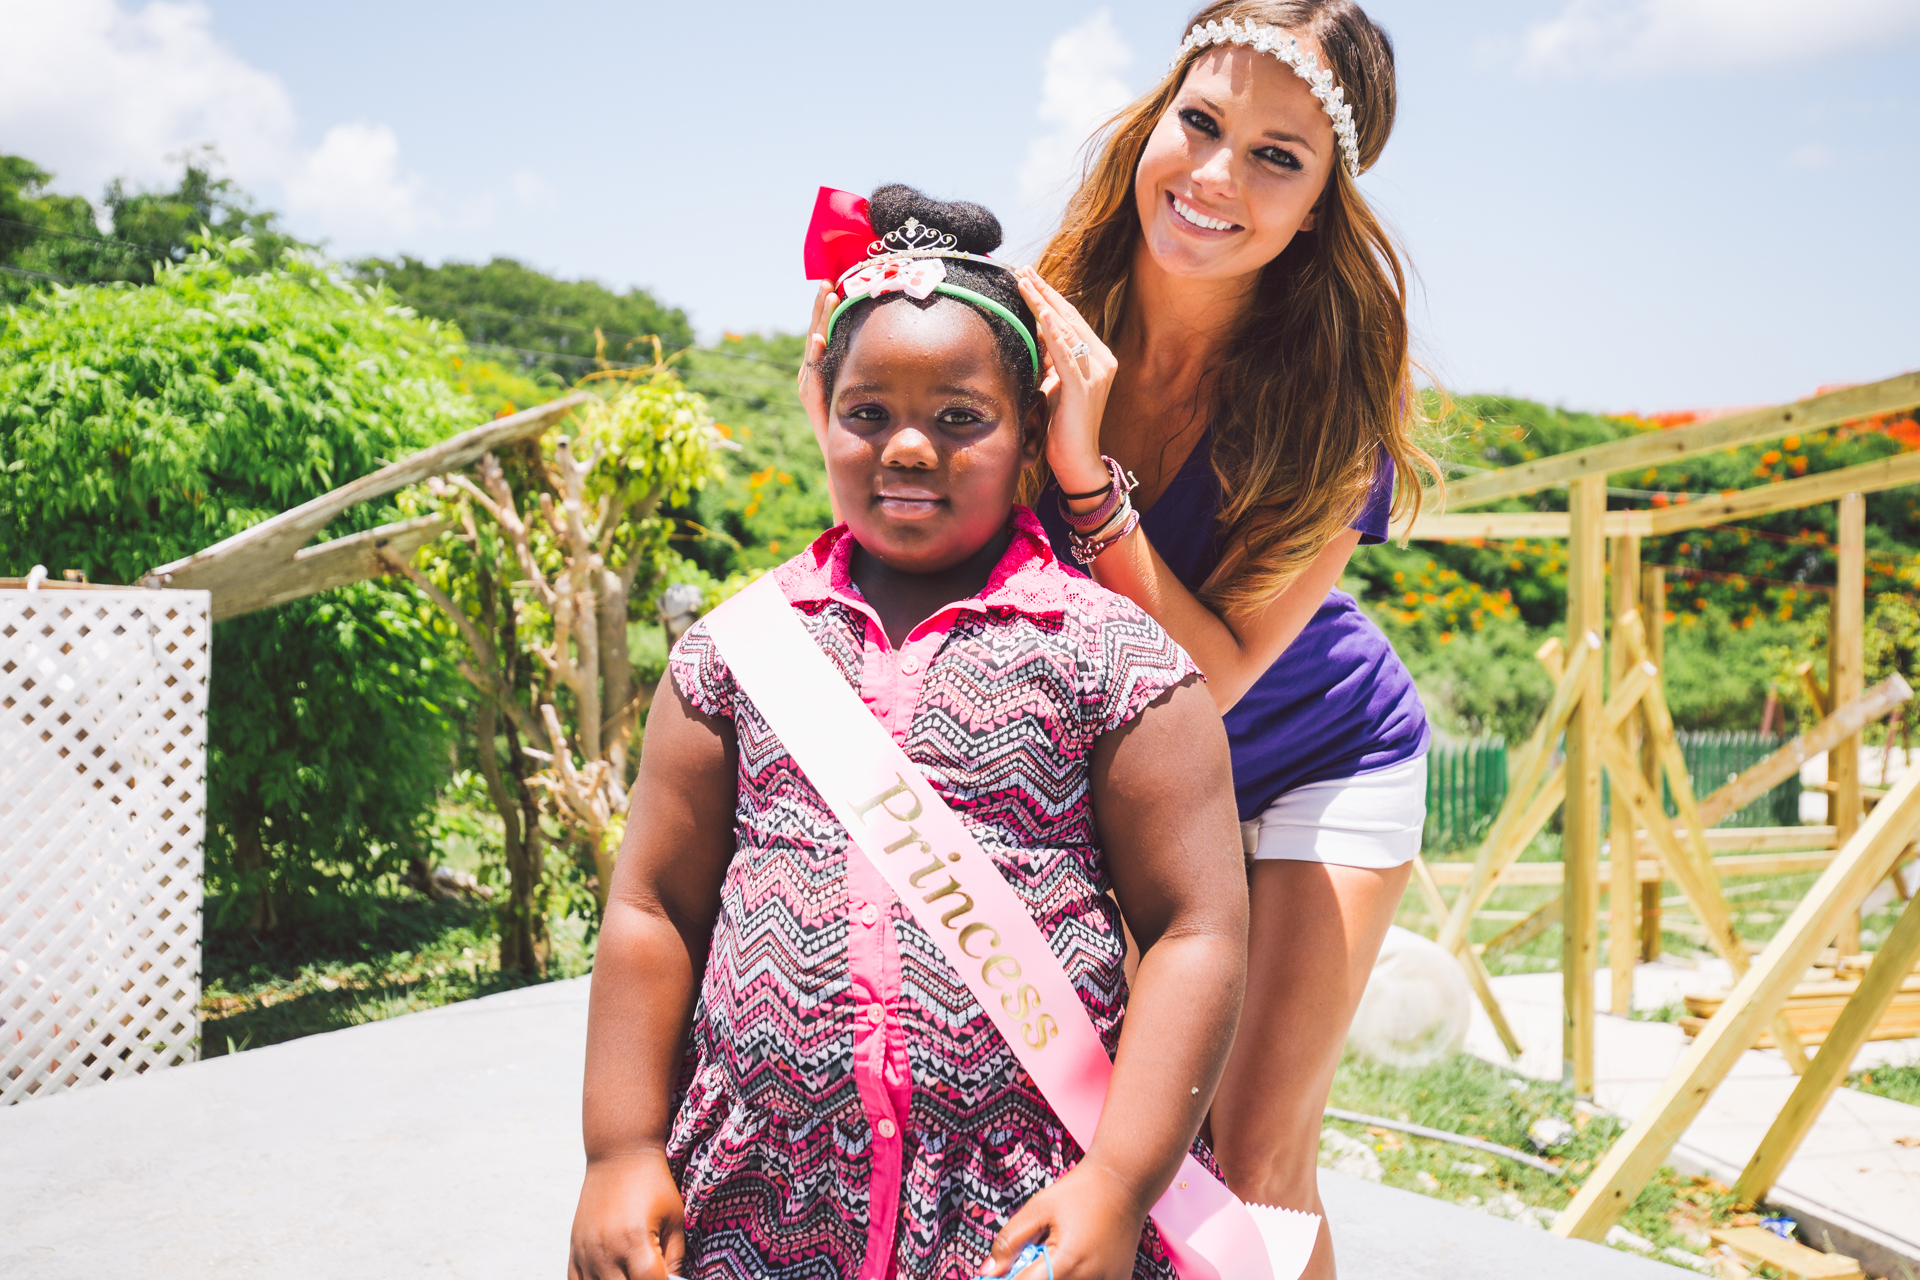 pageant of hope bahamas 2016-190.jpg